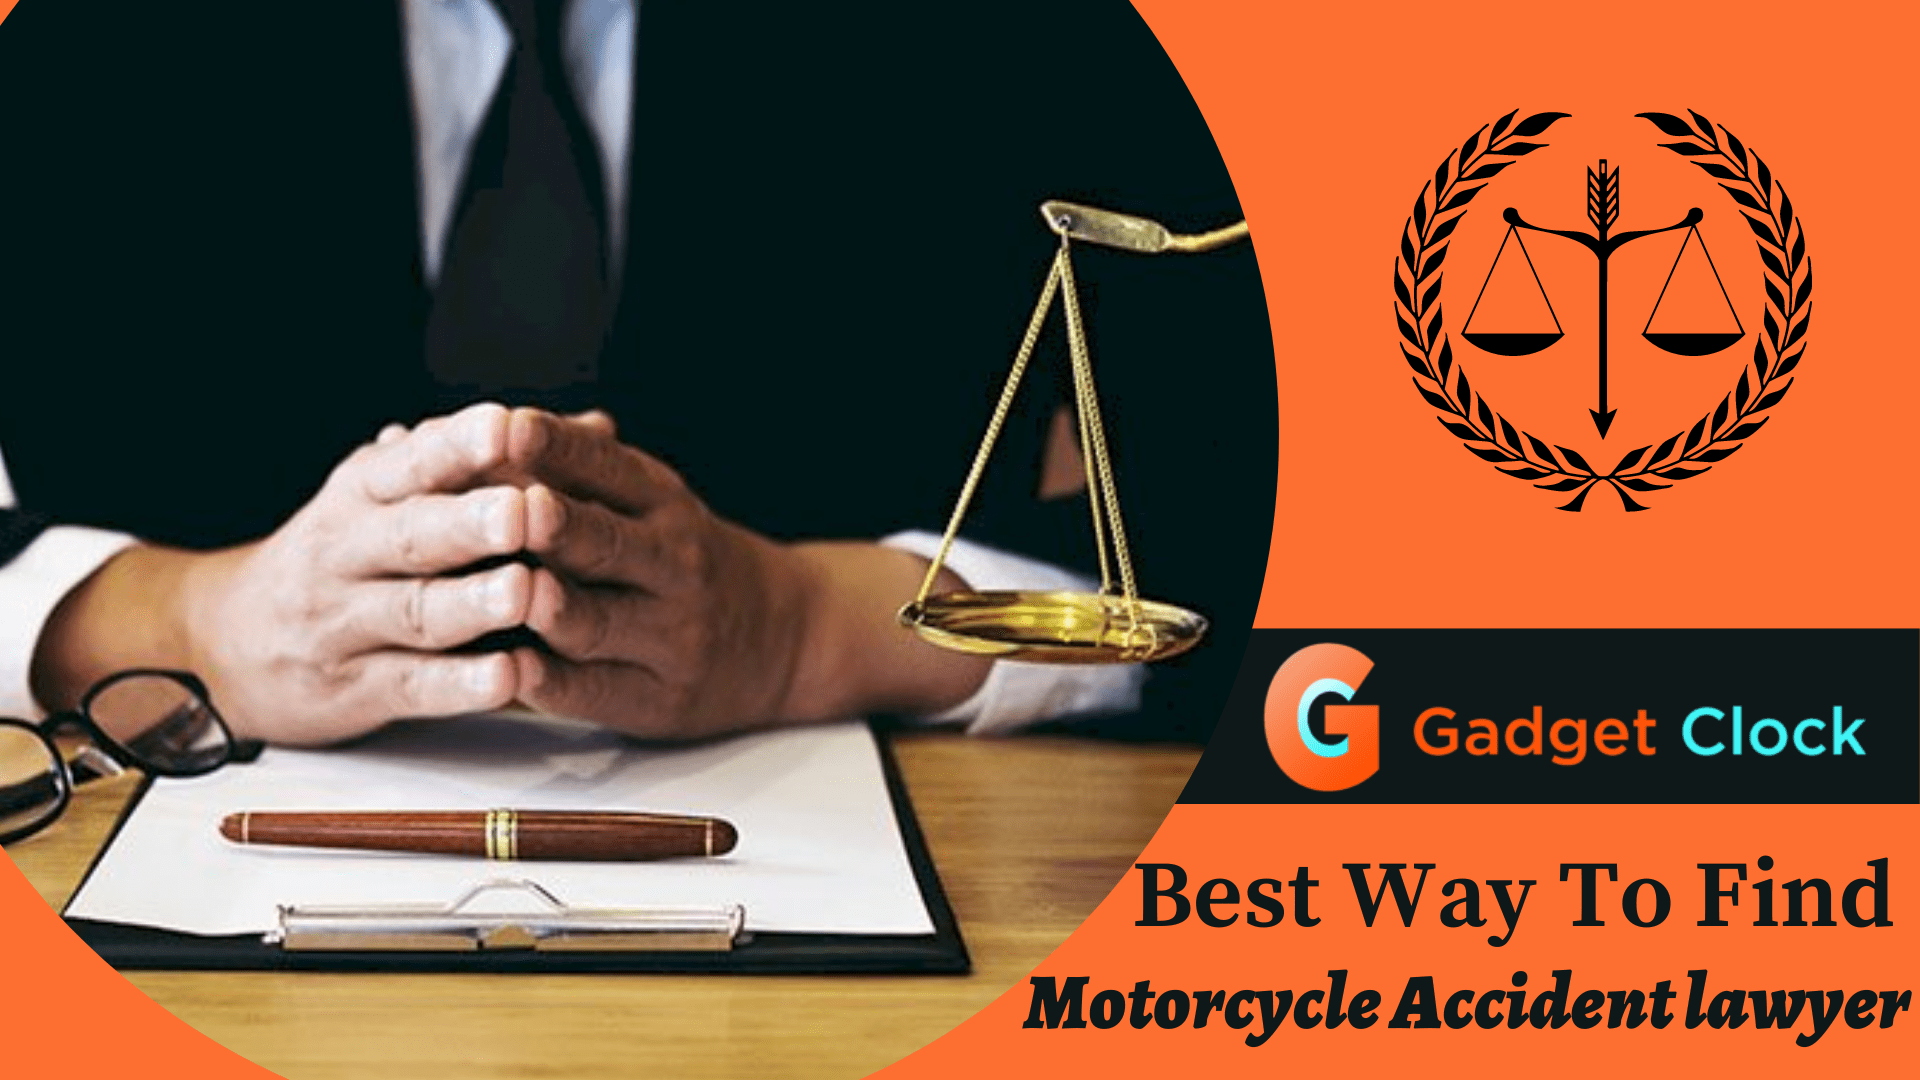 Best Way to Find best motorcycle accident lawyer near you in 2021 | motorcycle accident attorney